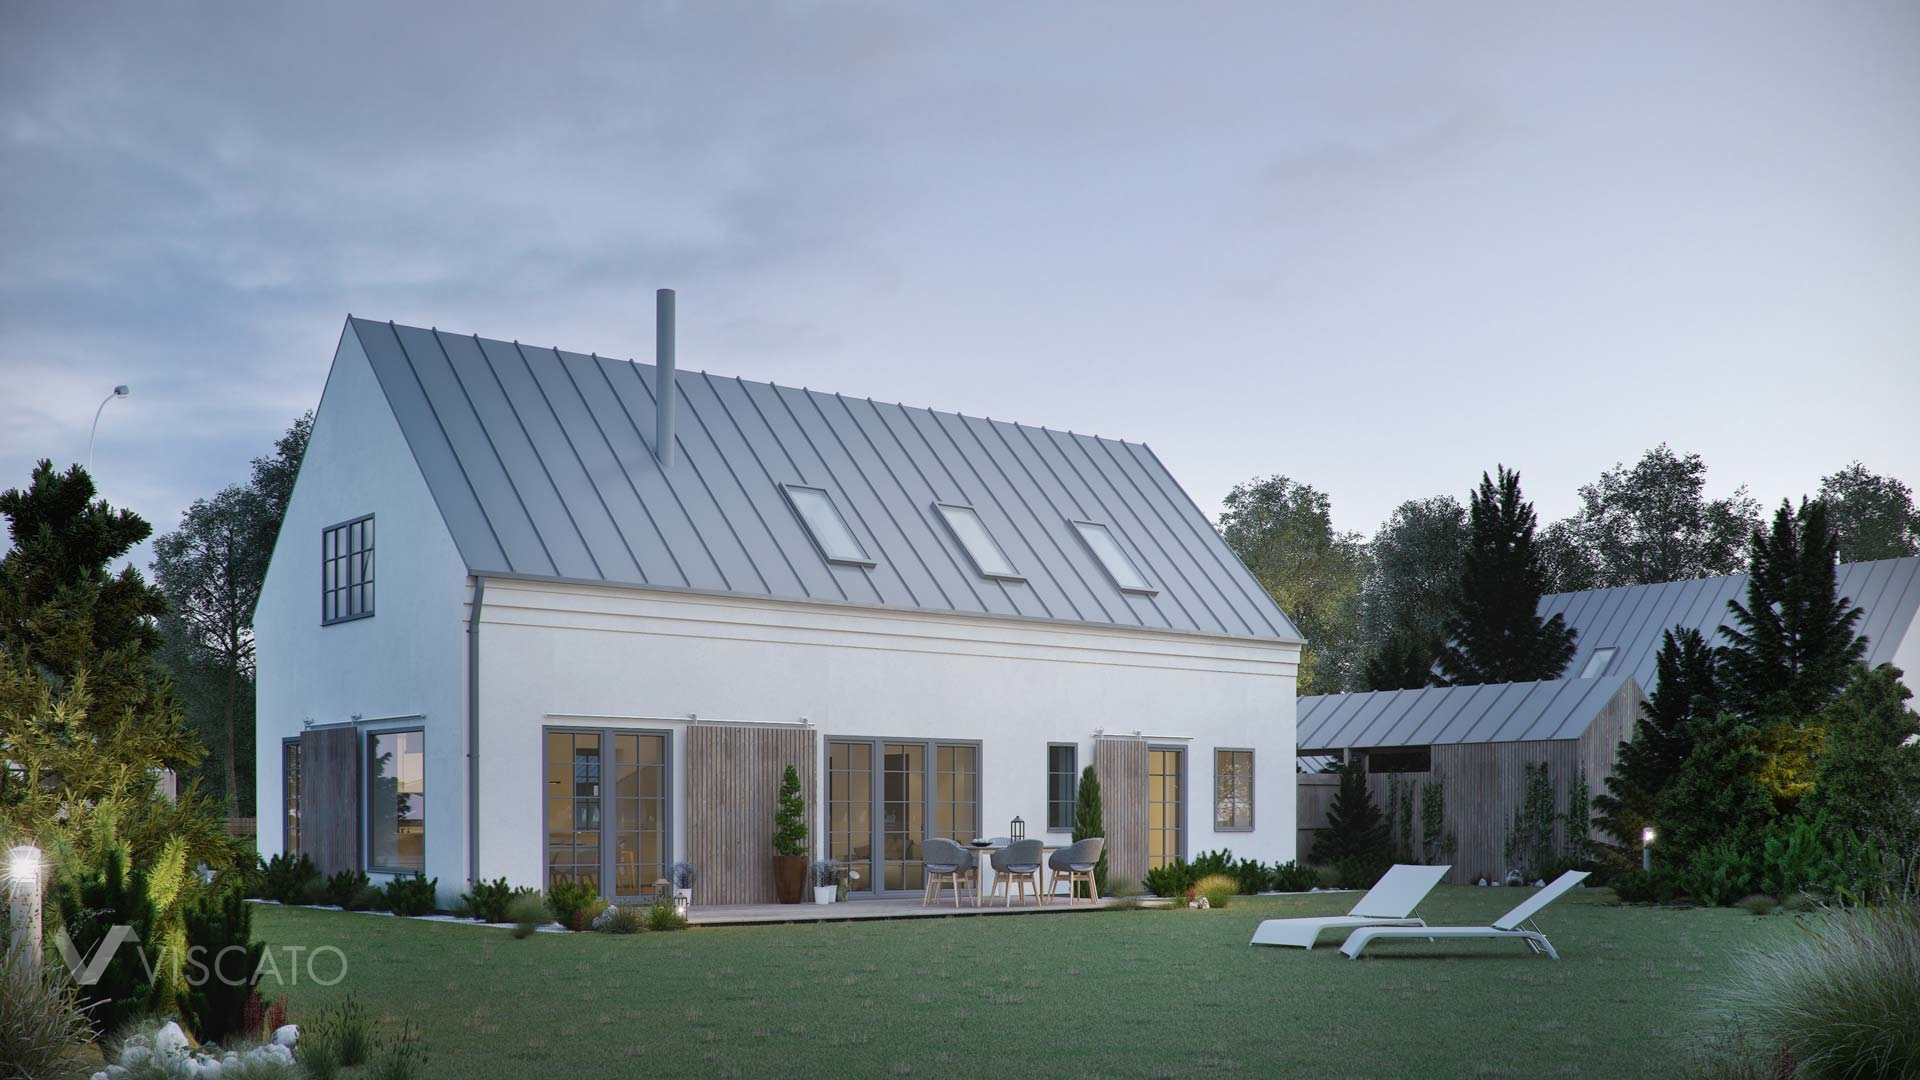 3D visualization of a detached house in Sweden- backyard view